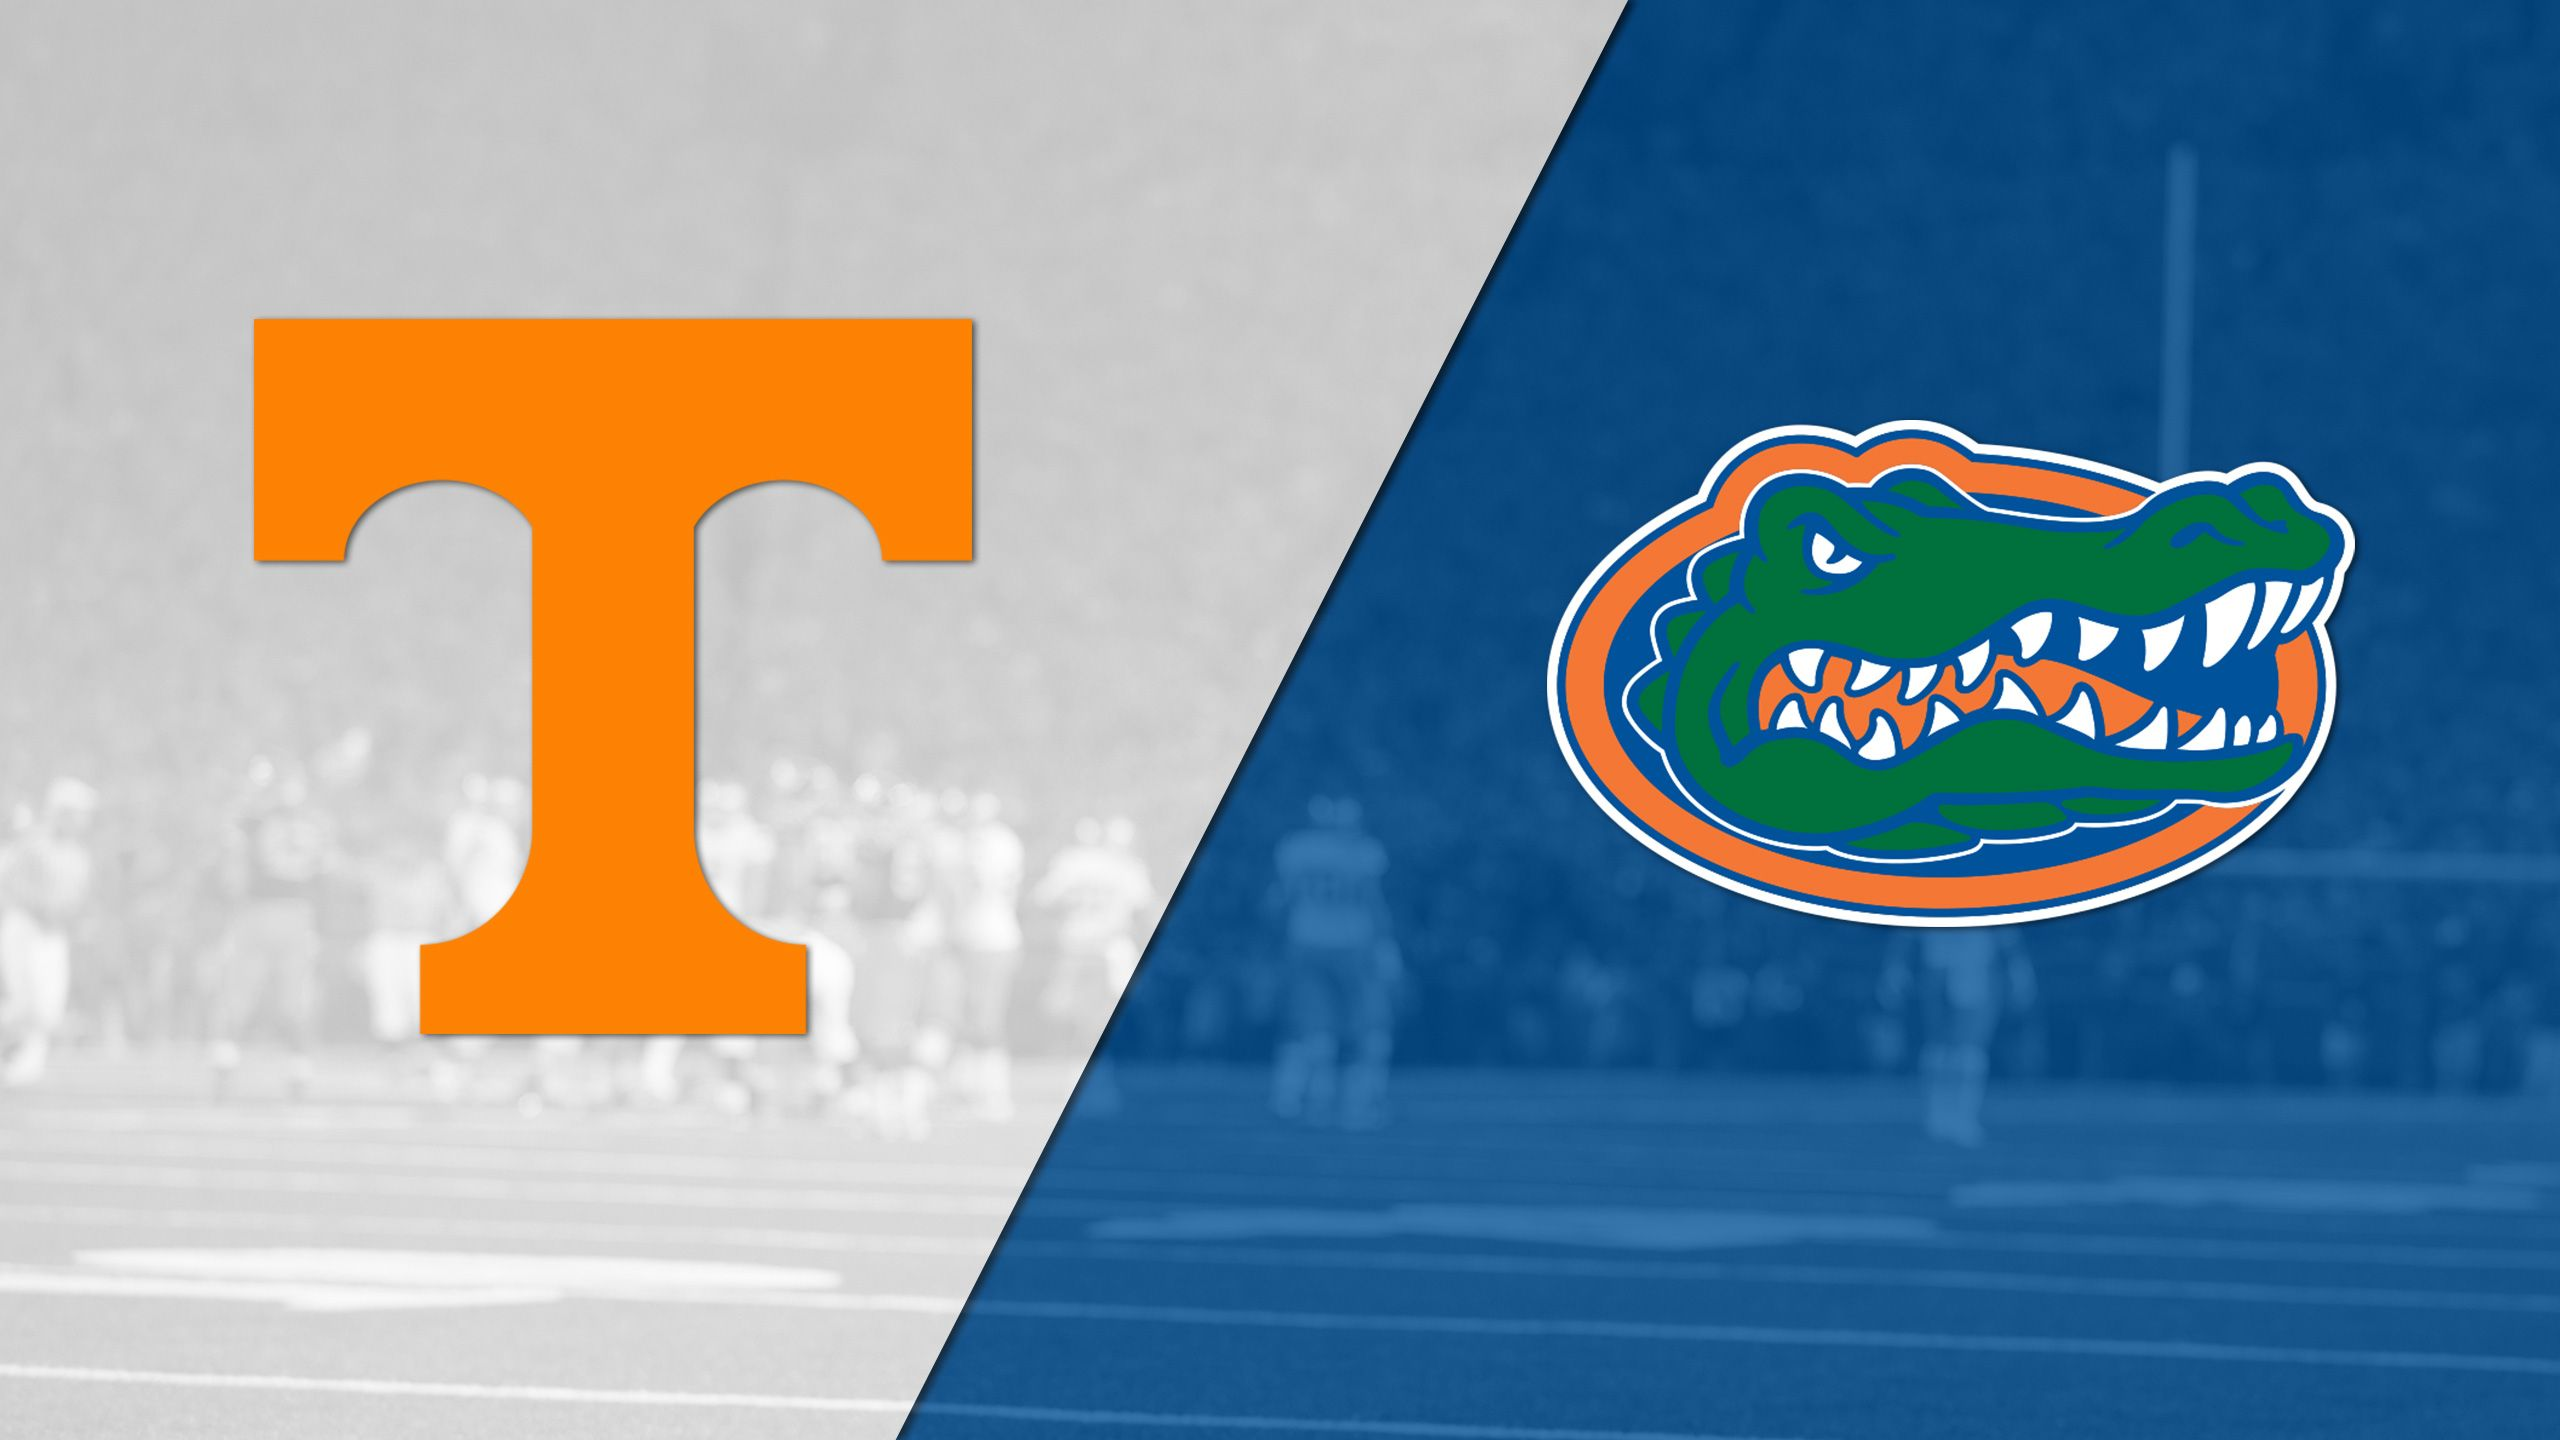 #23 Tennessee vs. #24 Florida (Football) (re-air)